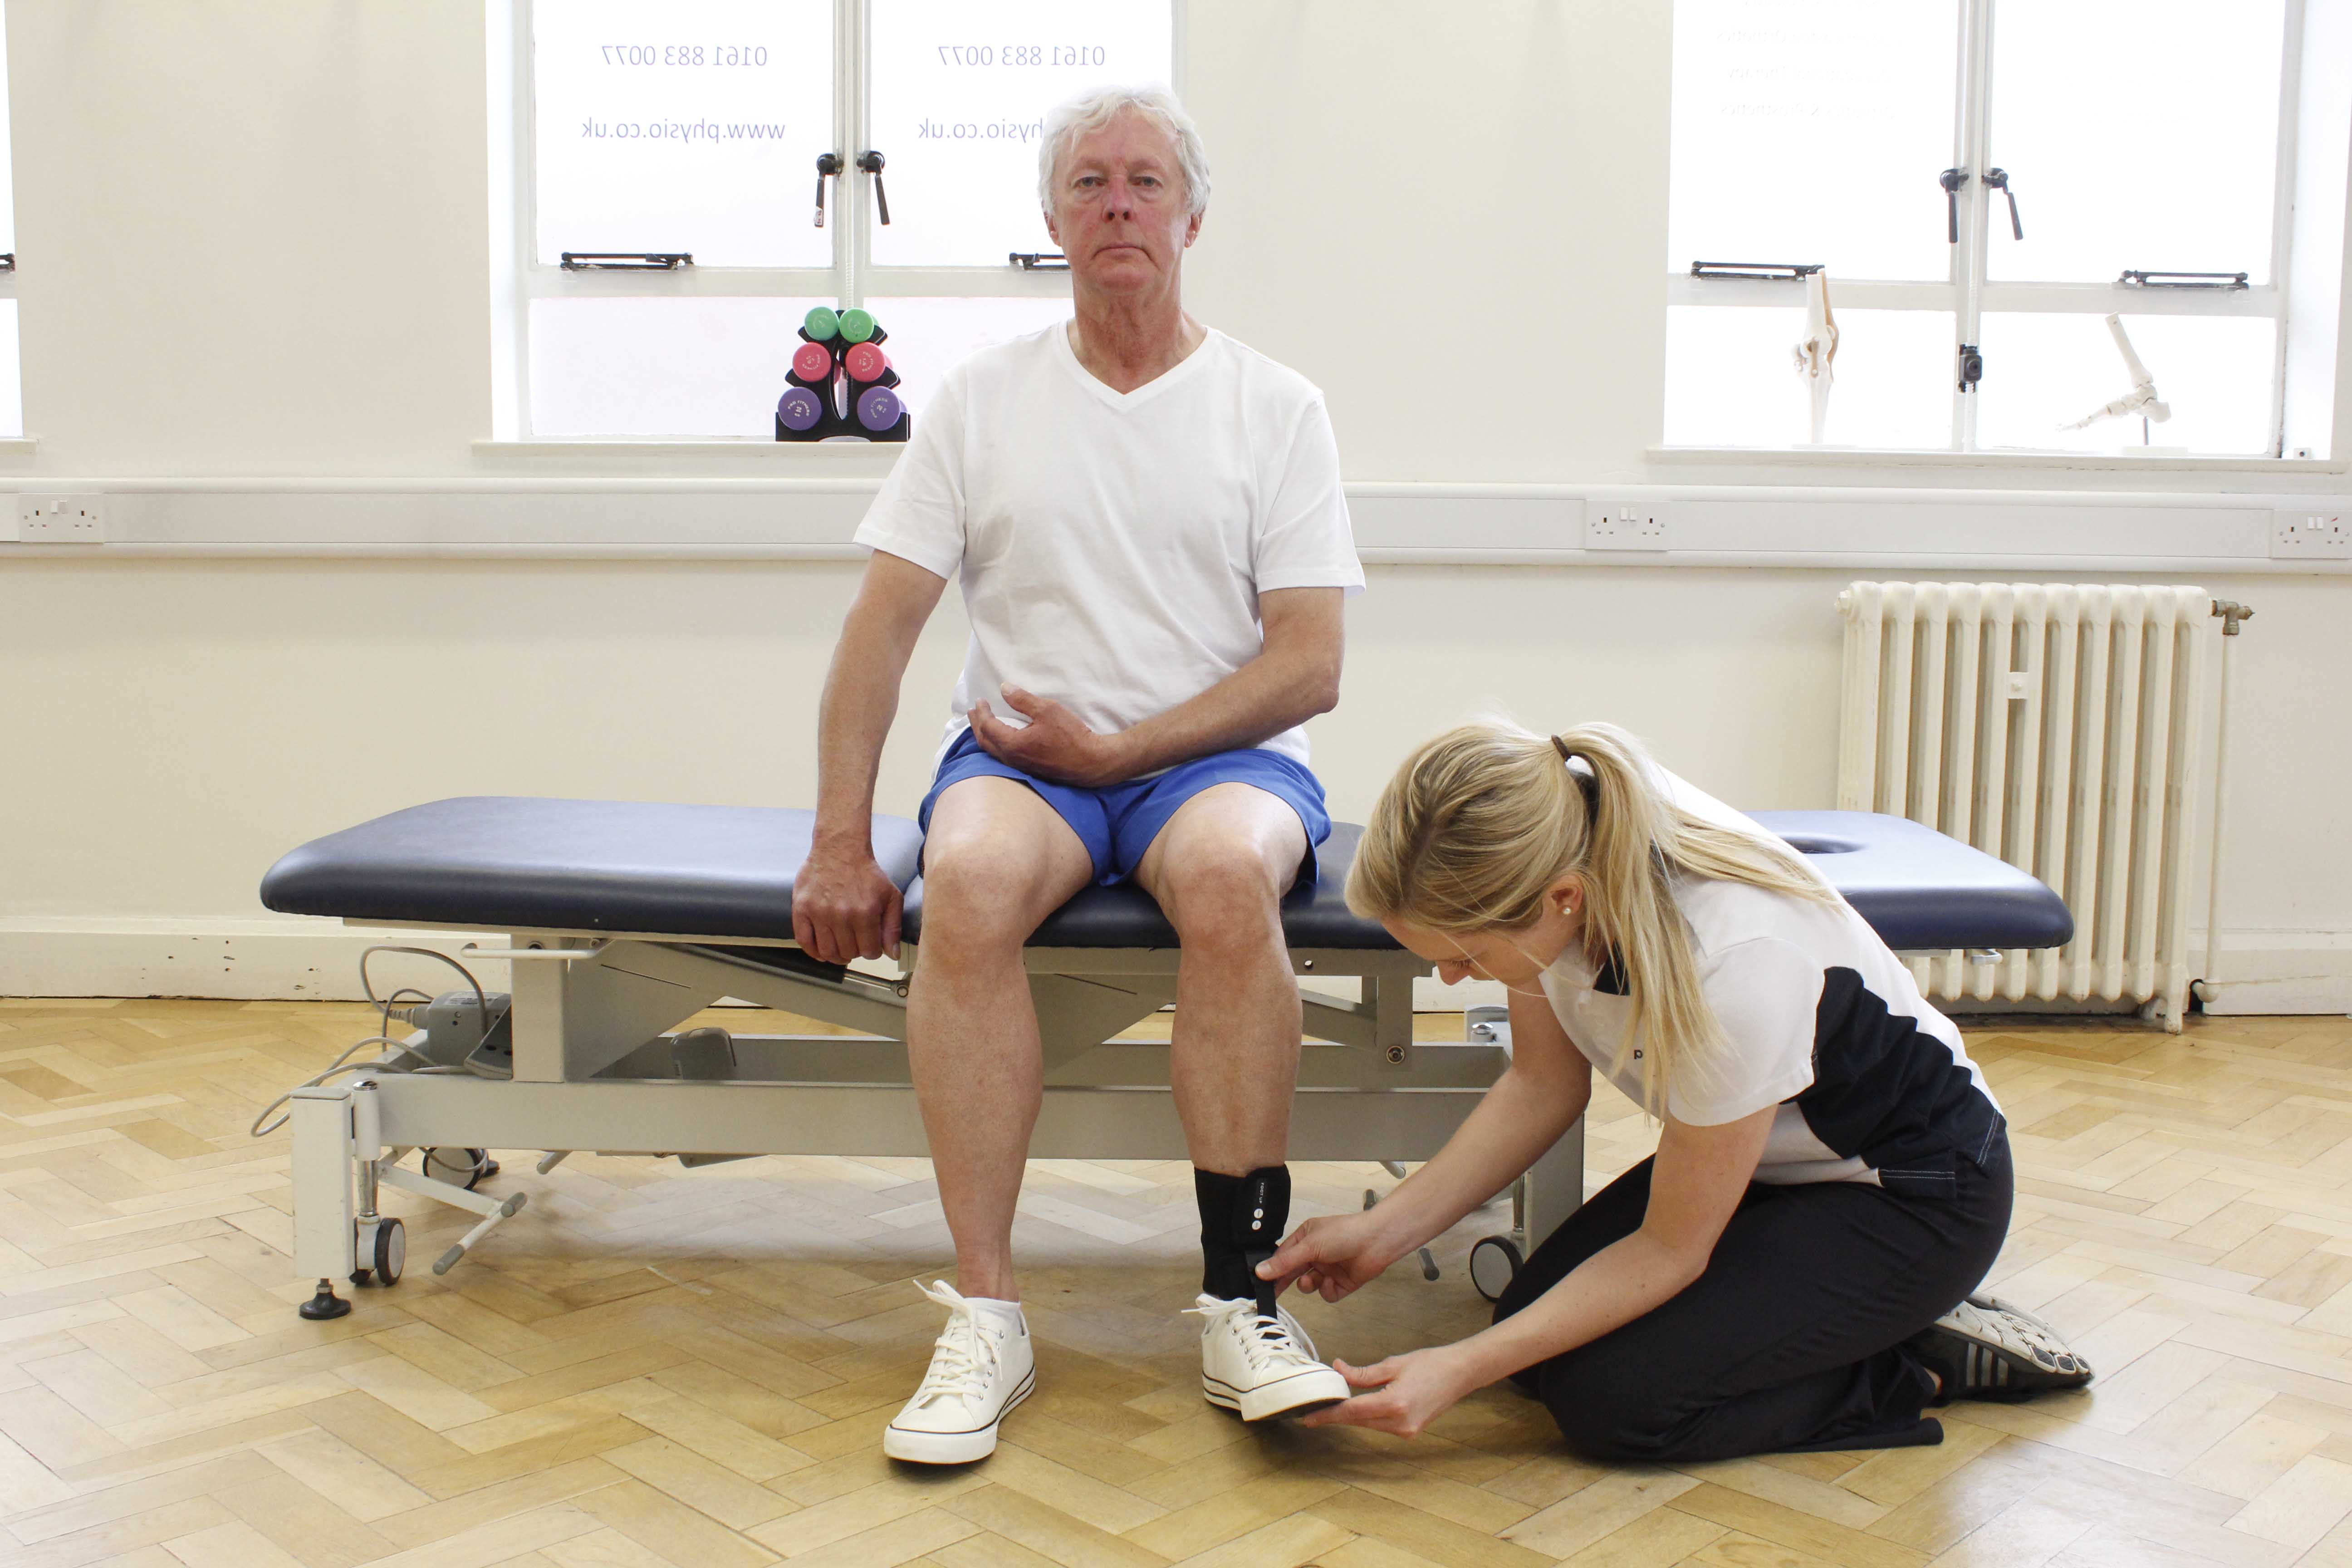 Therapist fitting an ankle splint to support the ankle and prevent foot drop